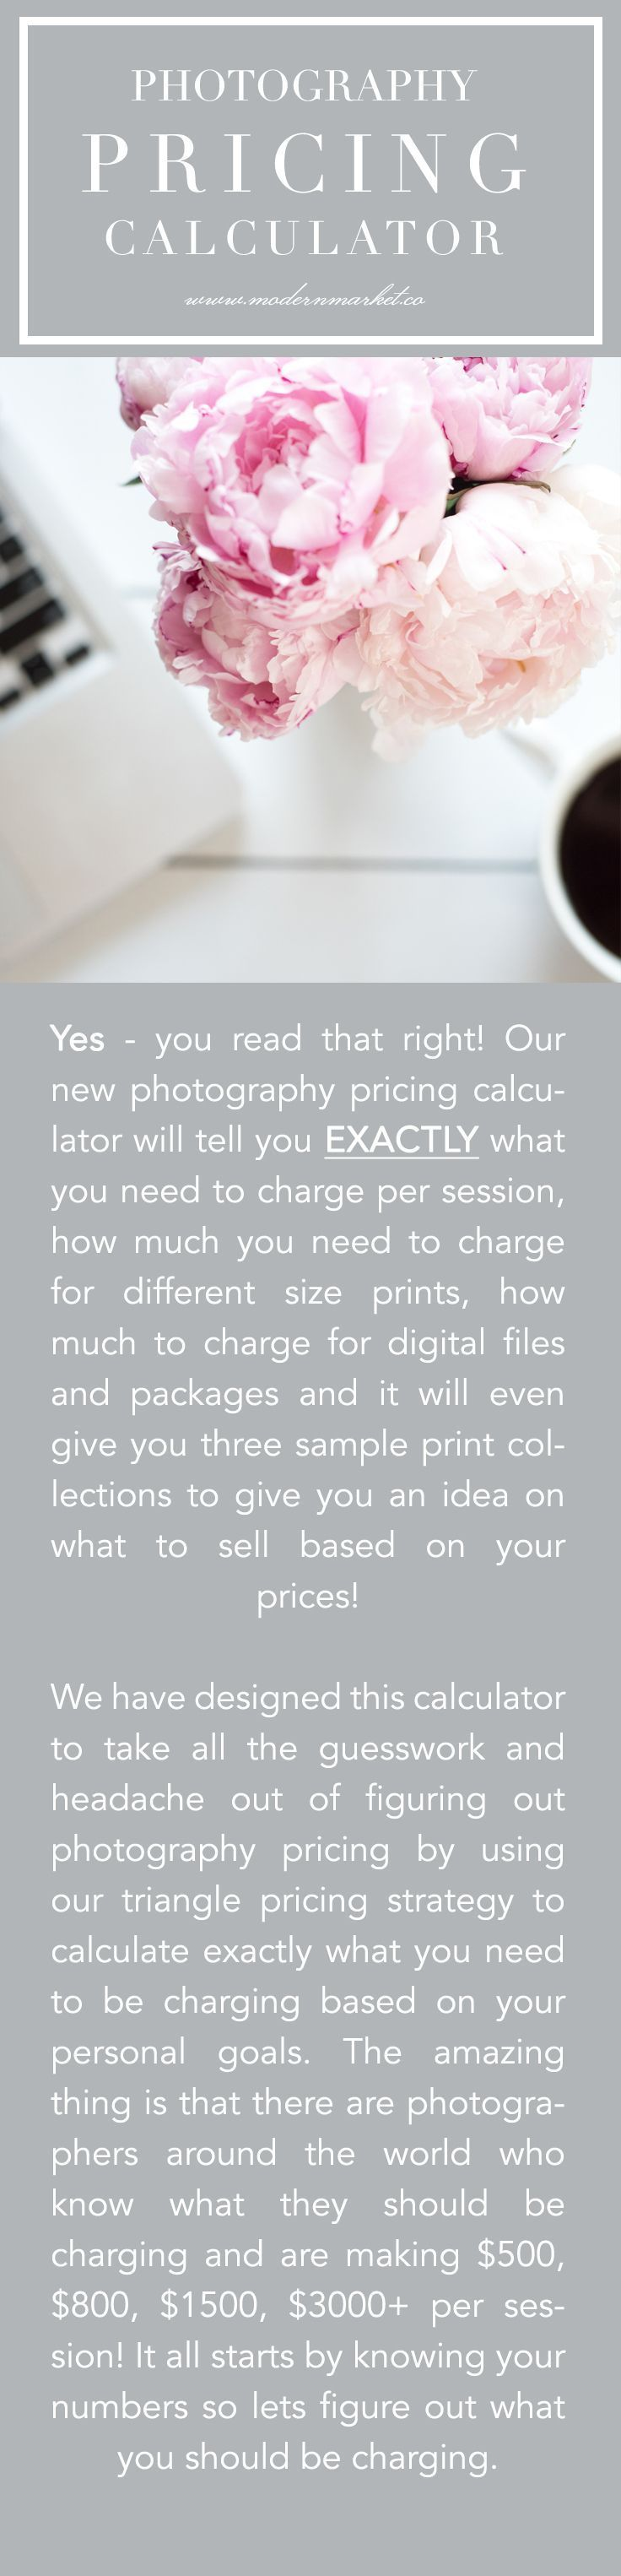 PHOTOGRAPHY PRICING CALCULATOR - It Calculates Everything For You Instantly!   The pricing calculator is amazing!!! It is so quick and super easy to use and it's amazing to see how things change just with a little adjustment. Going through the calculator I realized that I'm not charging enough for all my packages (close but not enough)! It's very eye opening. And if I want to change my prices, EASY!!!! Just input the details in the calculator and in minutes you have the perfect results!